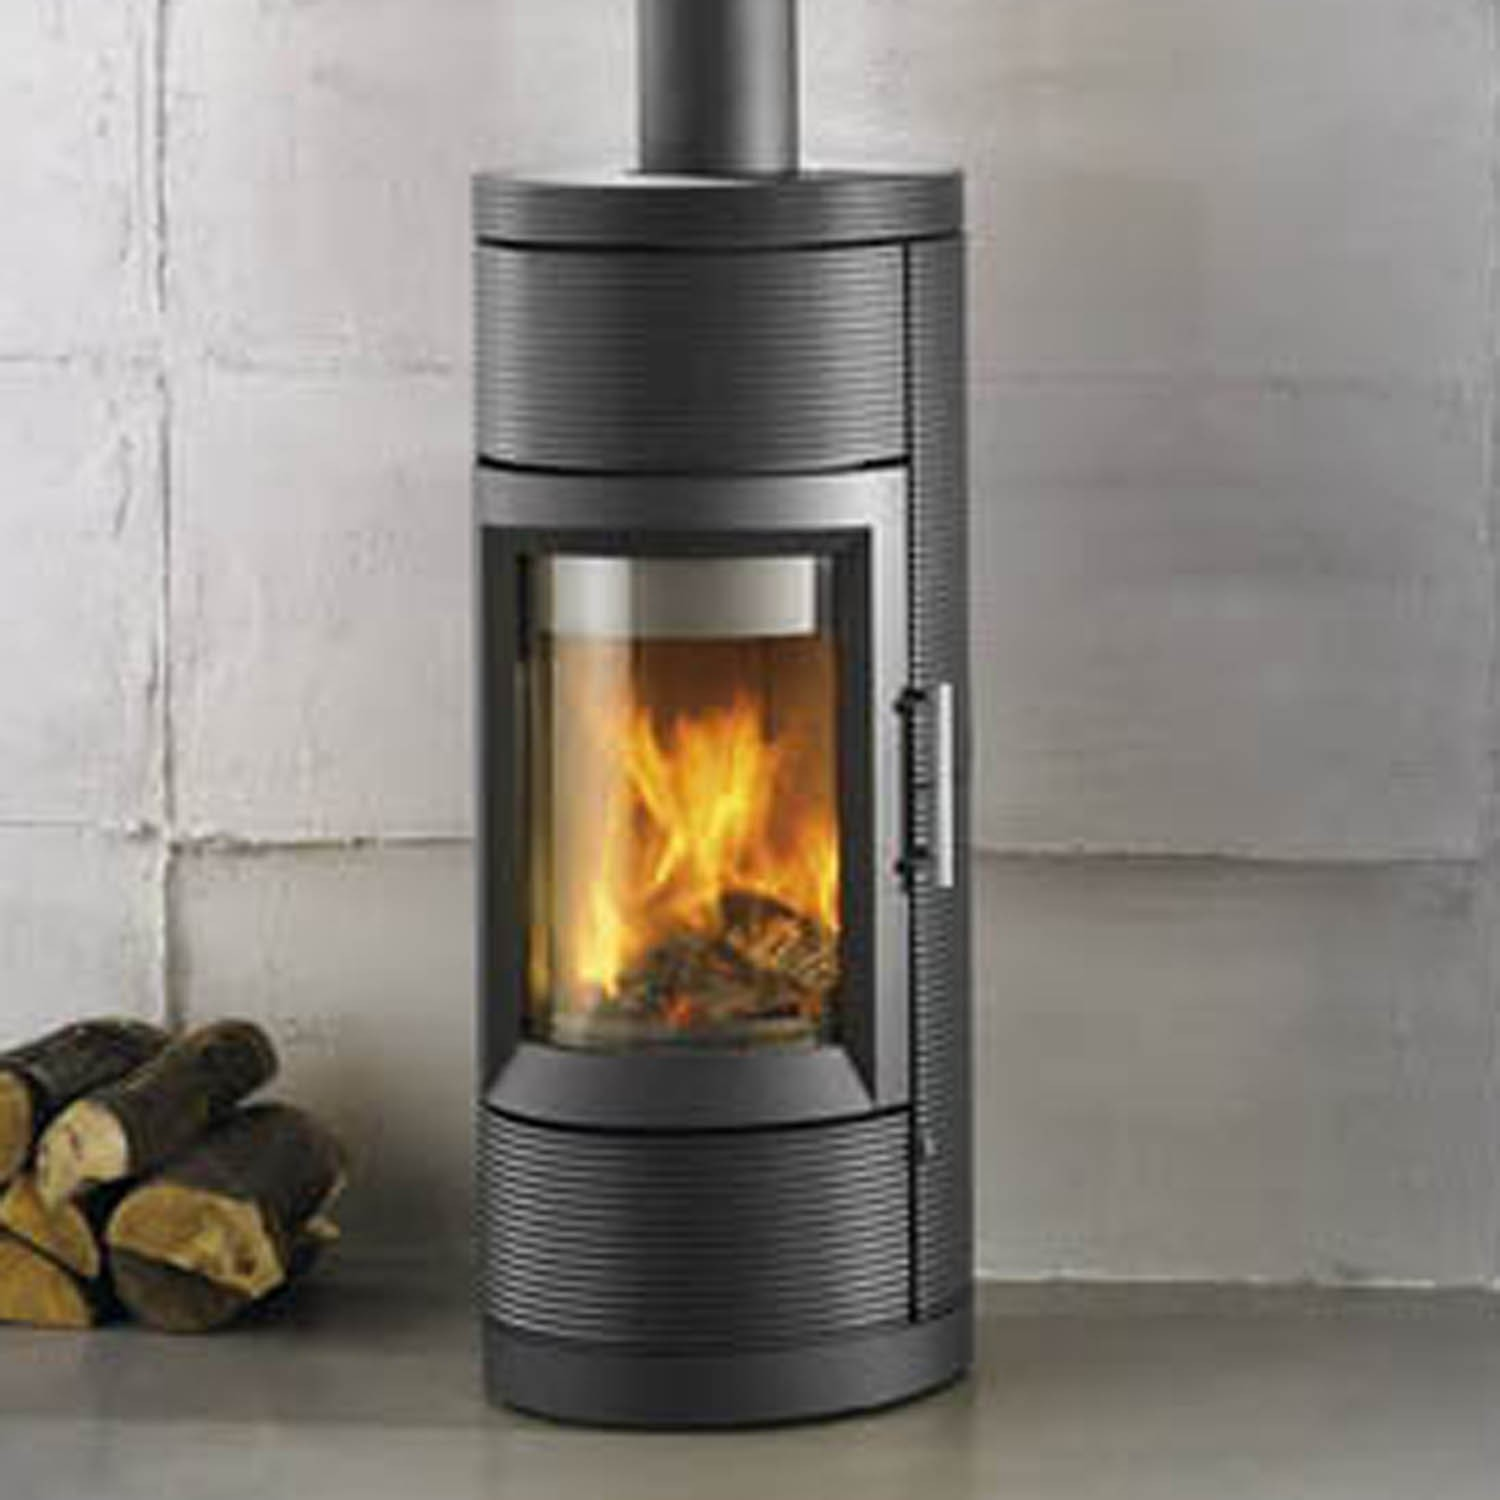 wood gosford fire standing products heaters fireplace a regency australia burning fireplaces freestanding free